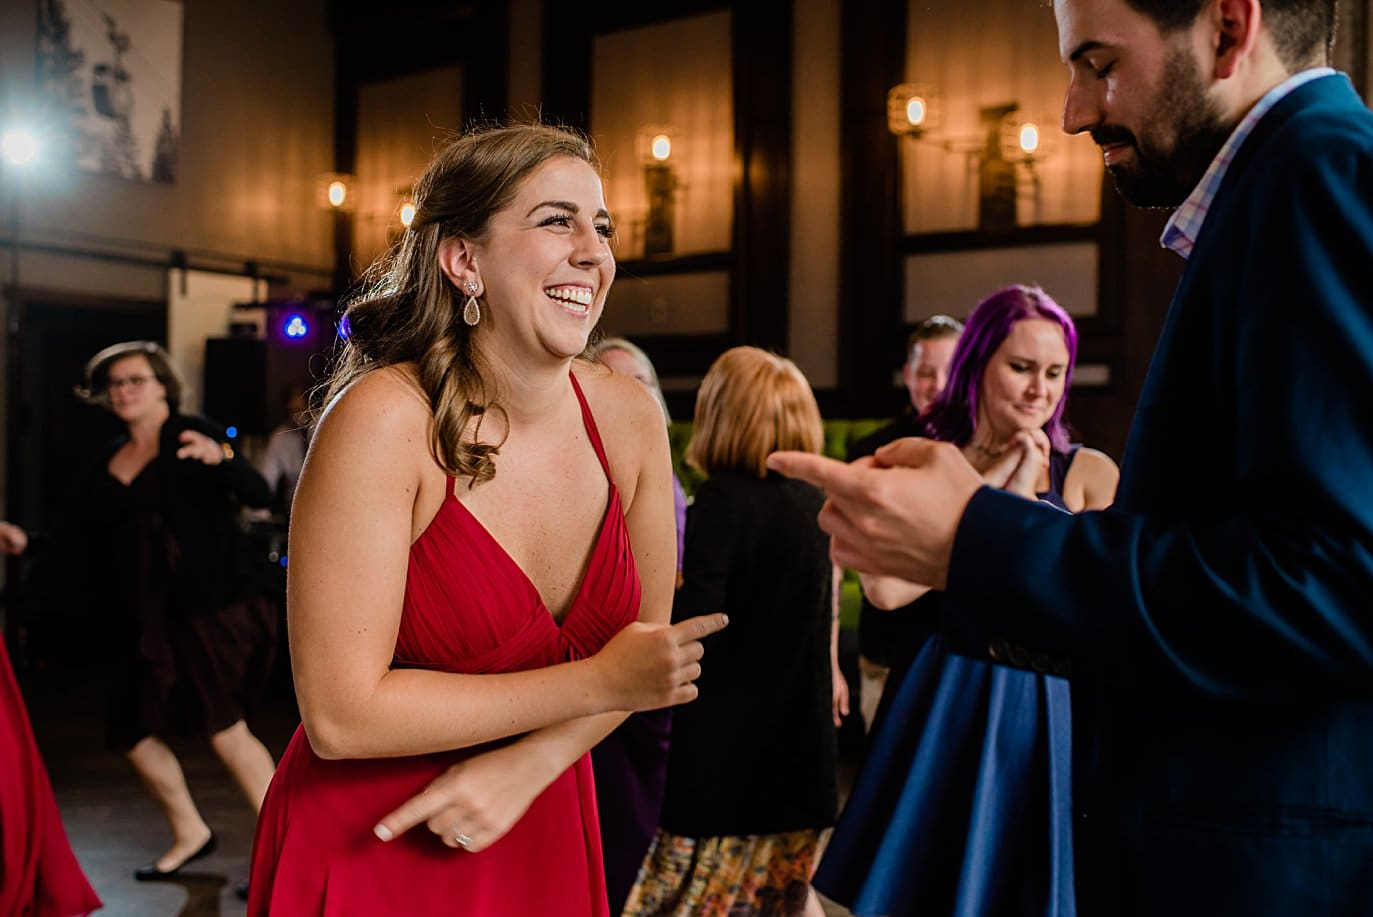 Colorado mountain dance party at Vail Manor Lodge wedding by Aspen wedding photographer Jennie Crate